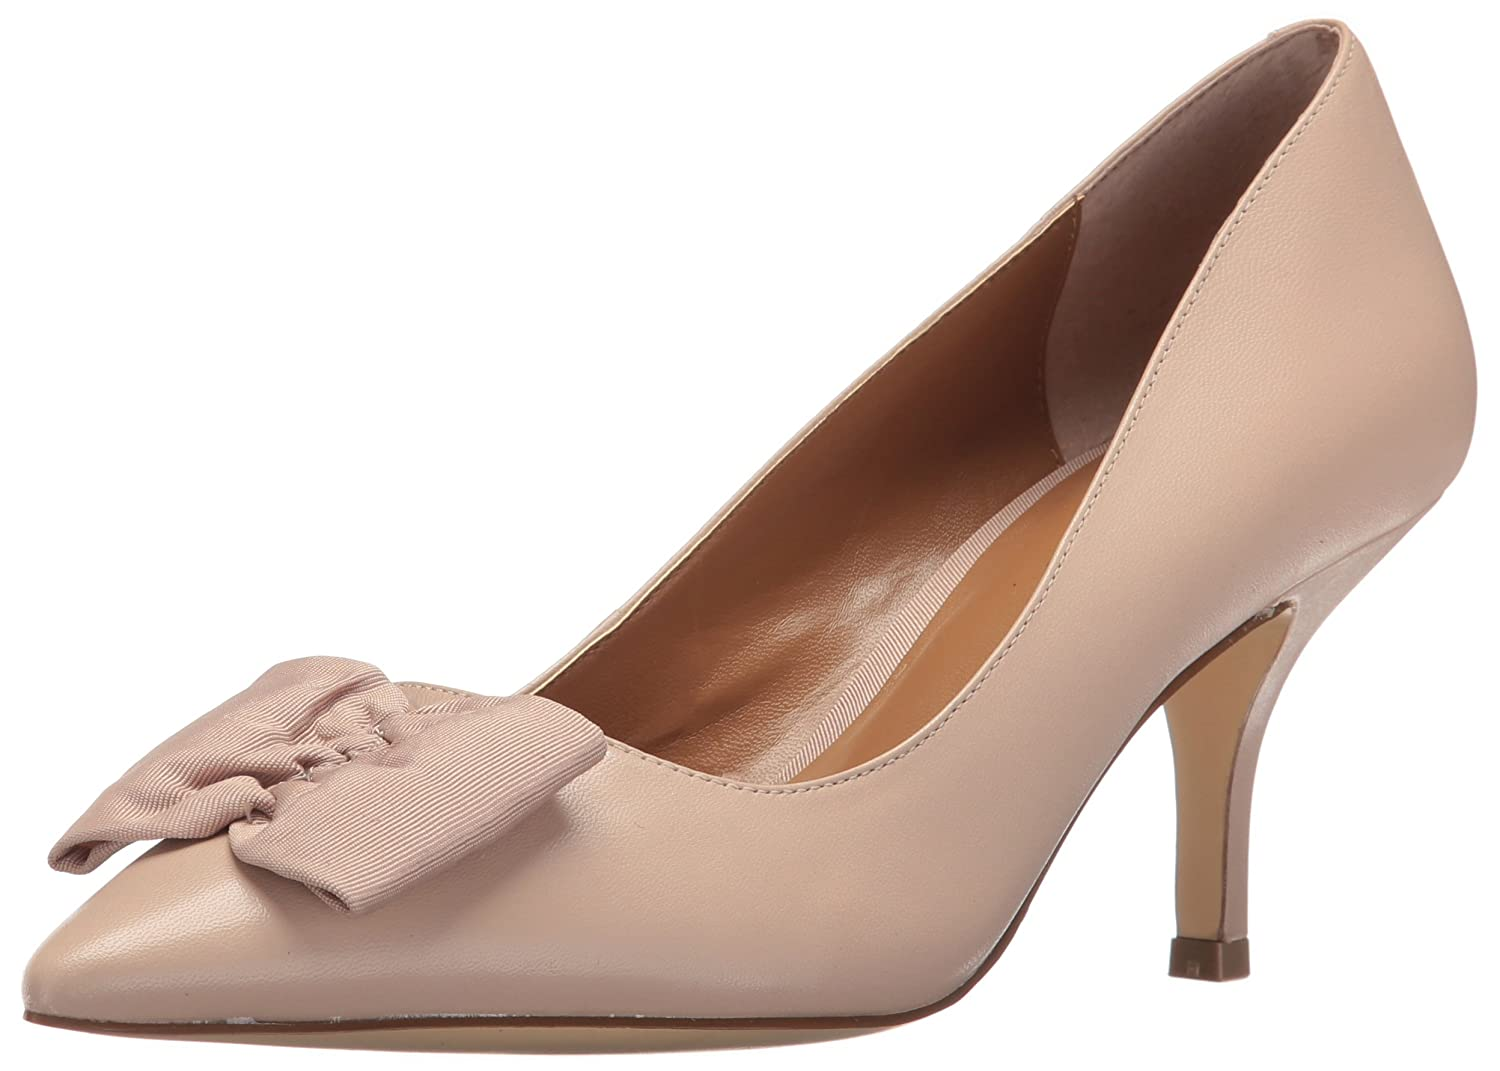 J.Renee Women's Camley Dress Pump B01CL1UY2E 5 B(M) US|Nude